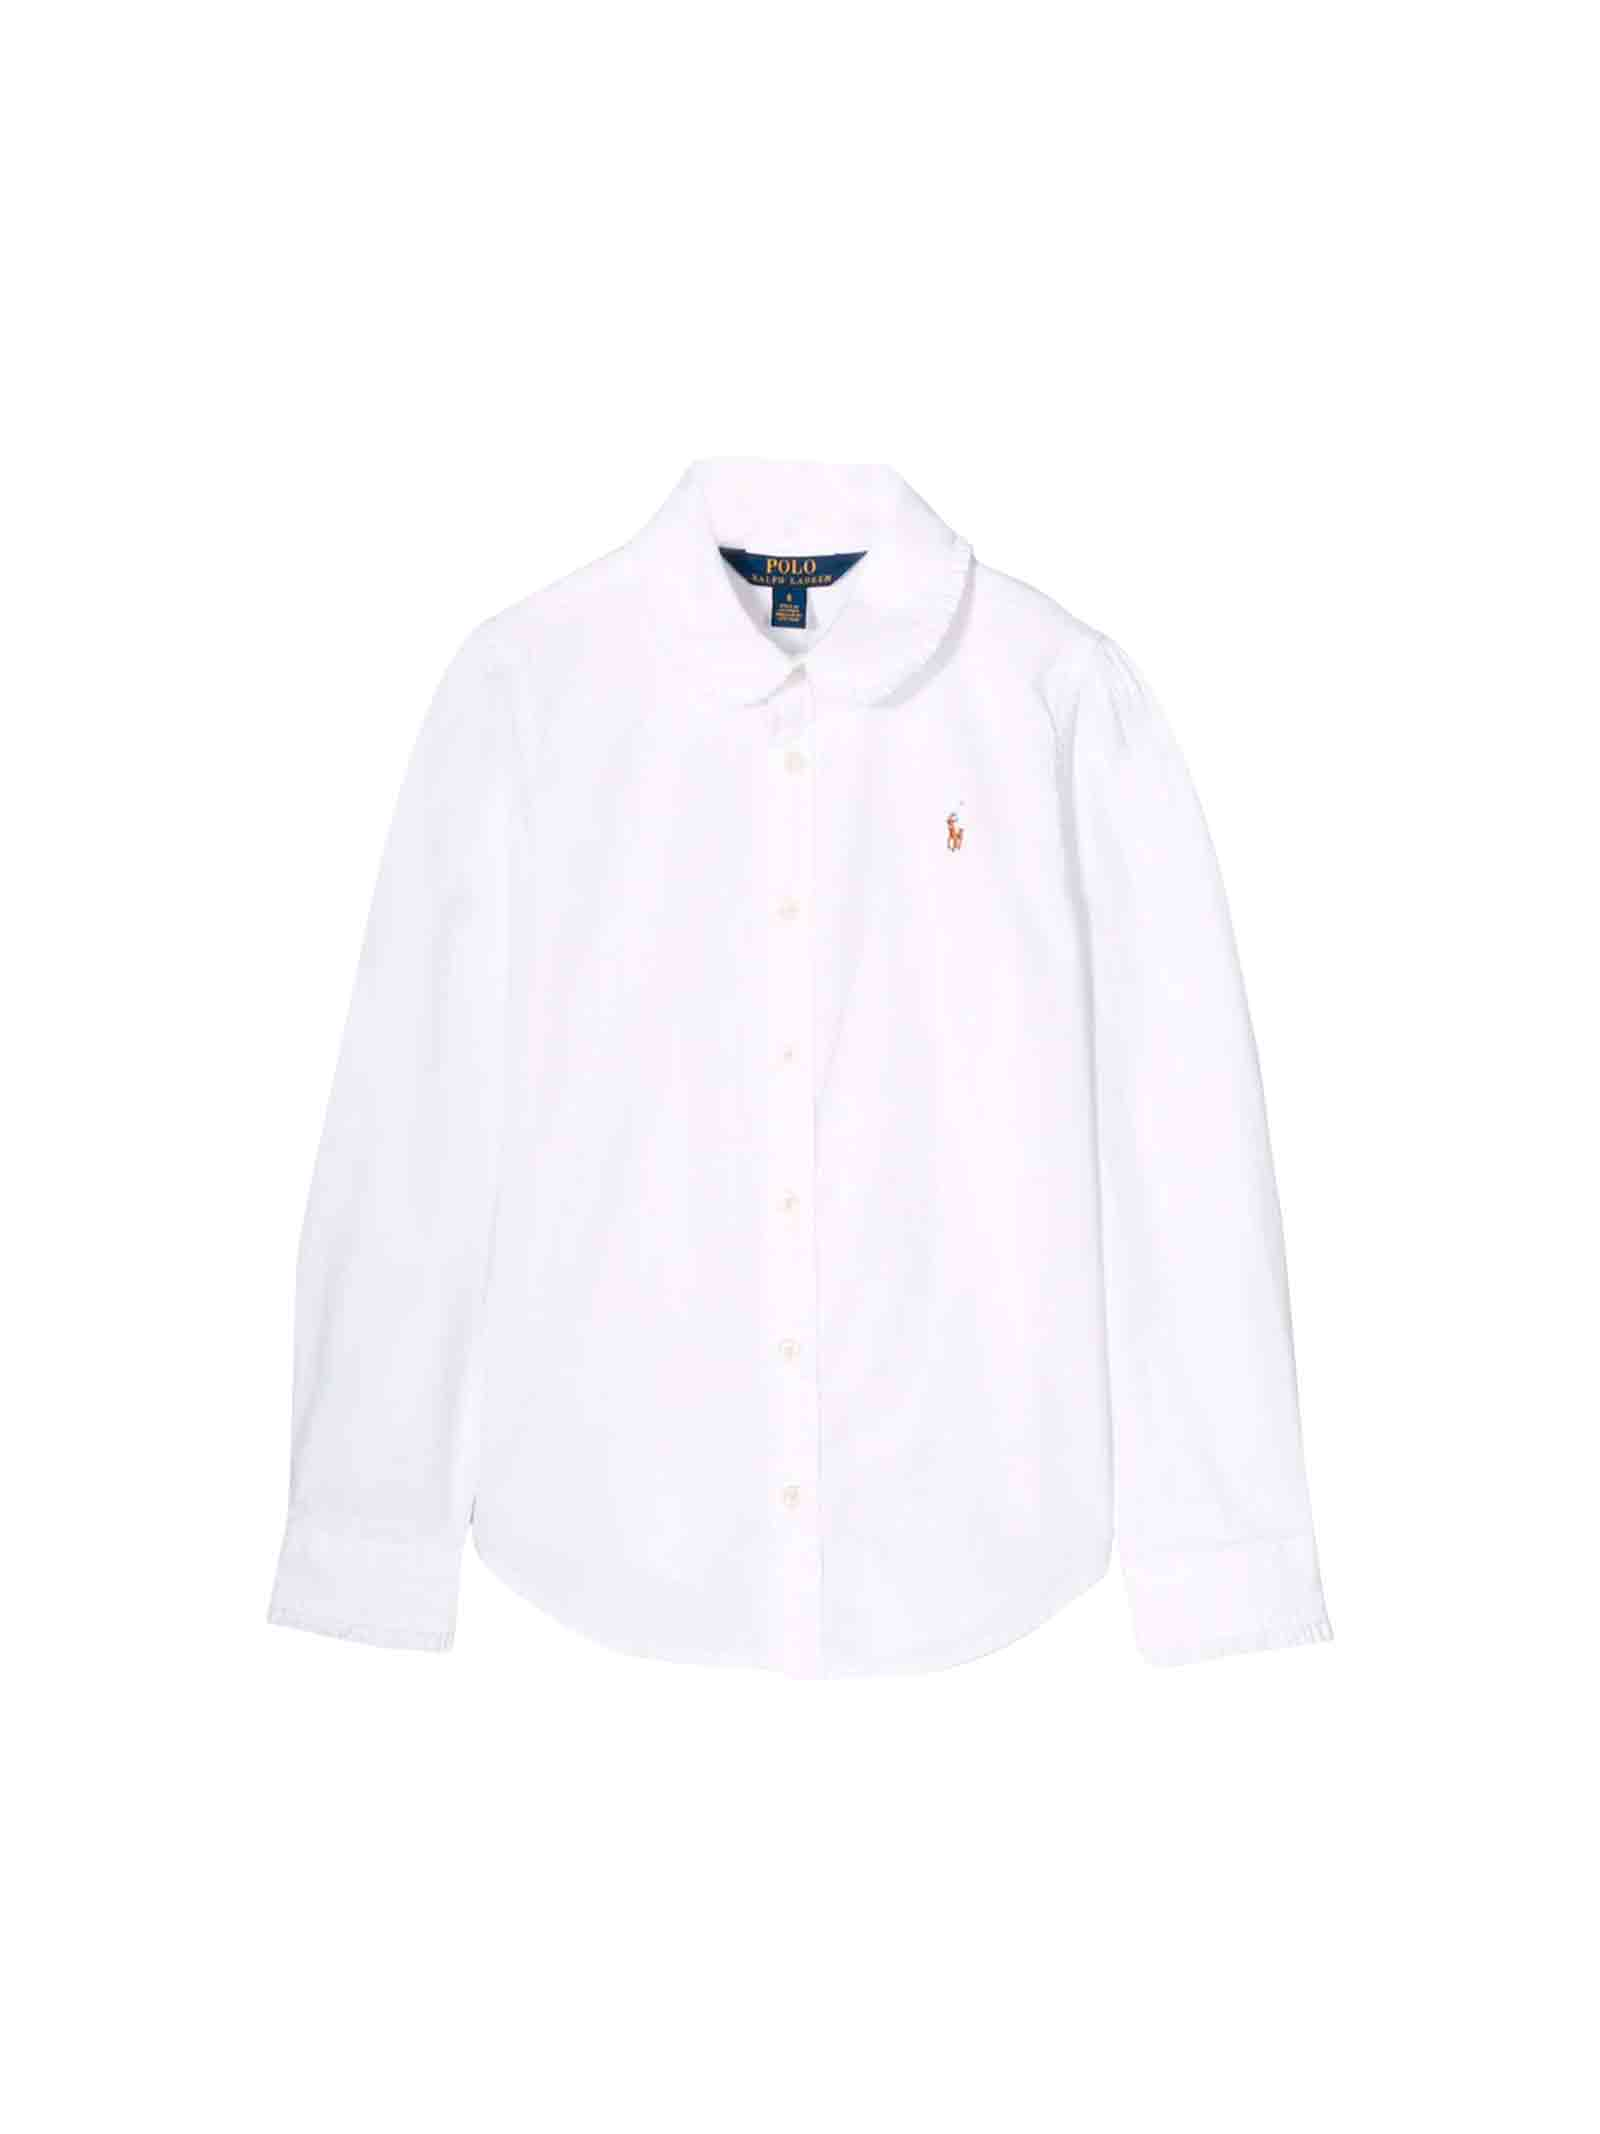 best loved 47581 9b399 Camicia bianca bambino Ralph Lauren kids